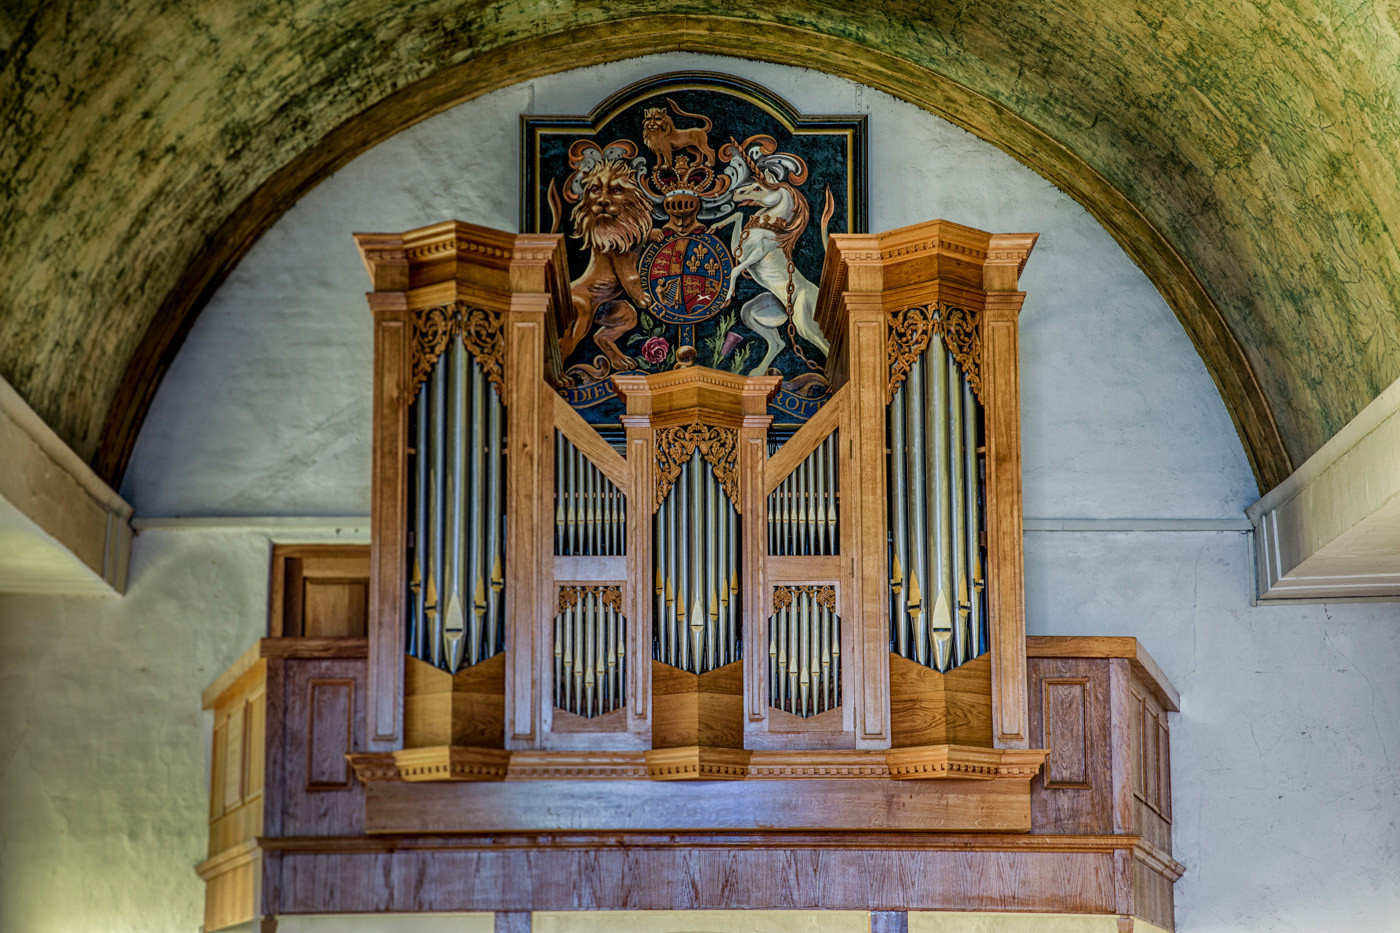 GROUP 1 20 ORGAN PIPES by Roger Wates